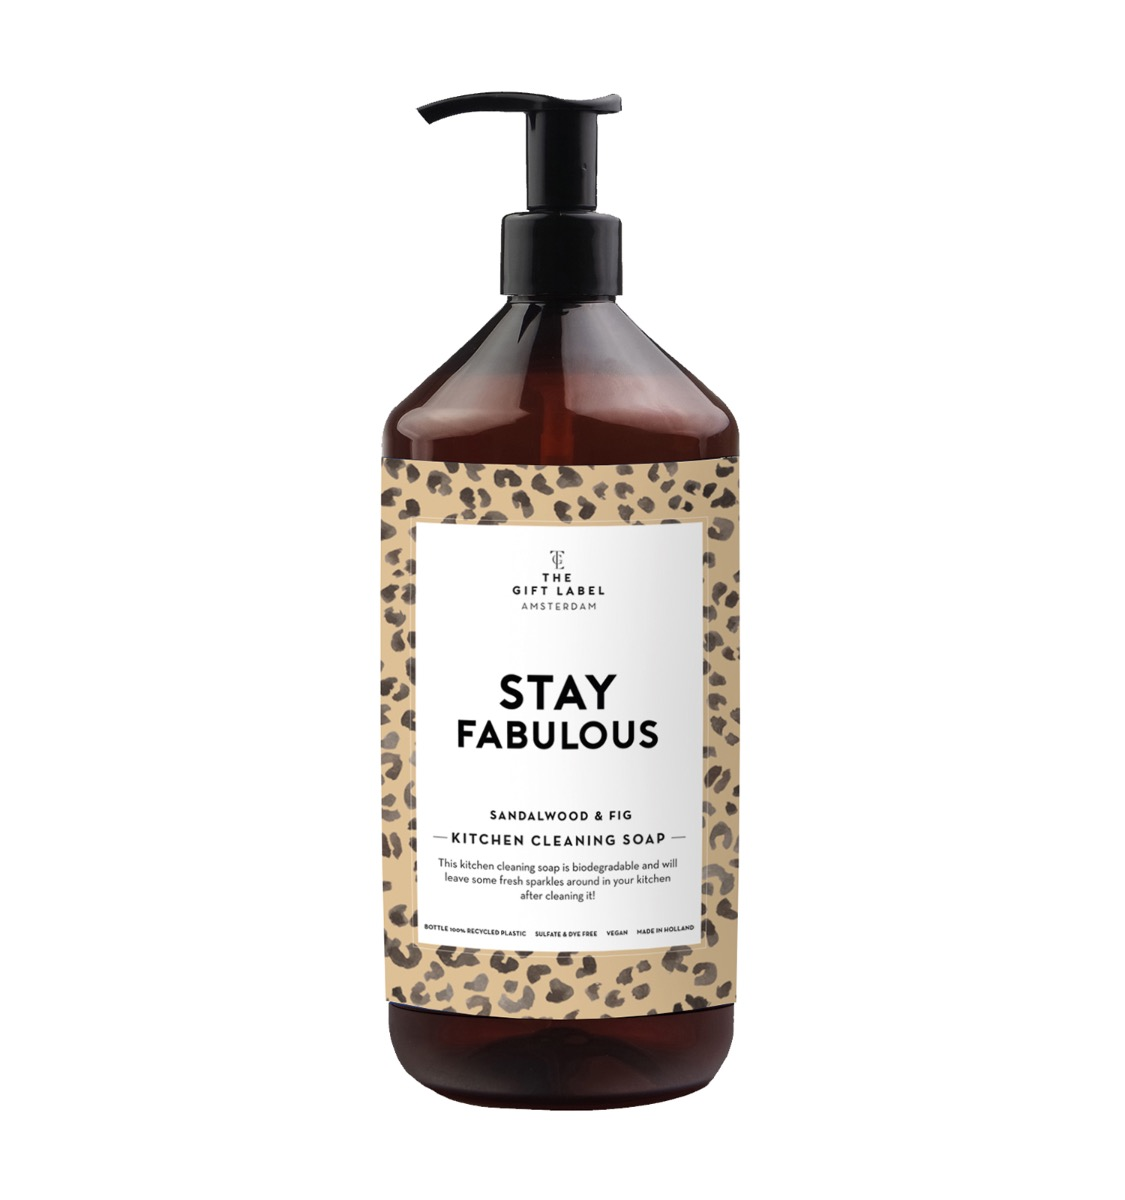 "KITCHEN CLEANING SOAP ""STAY FABULOUS"" - THE GIFT LABEL"